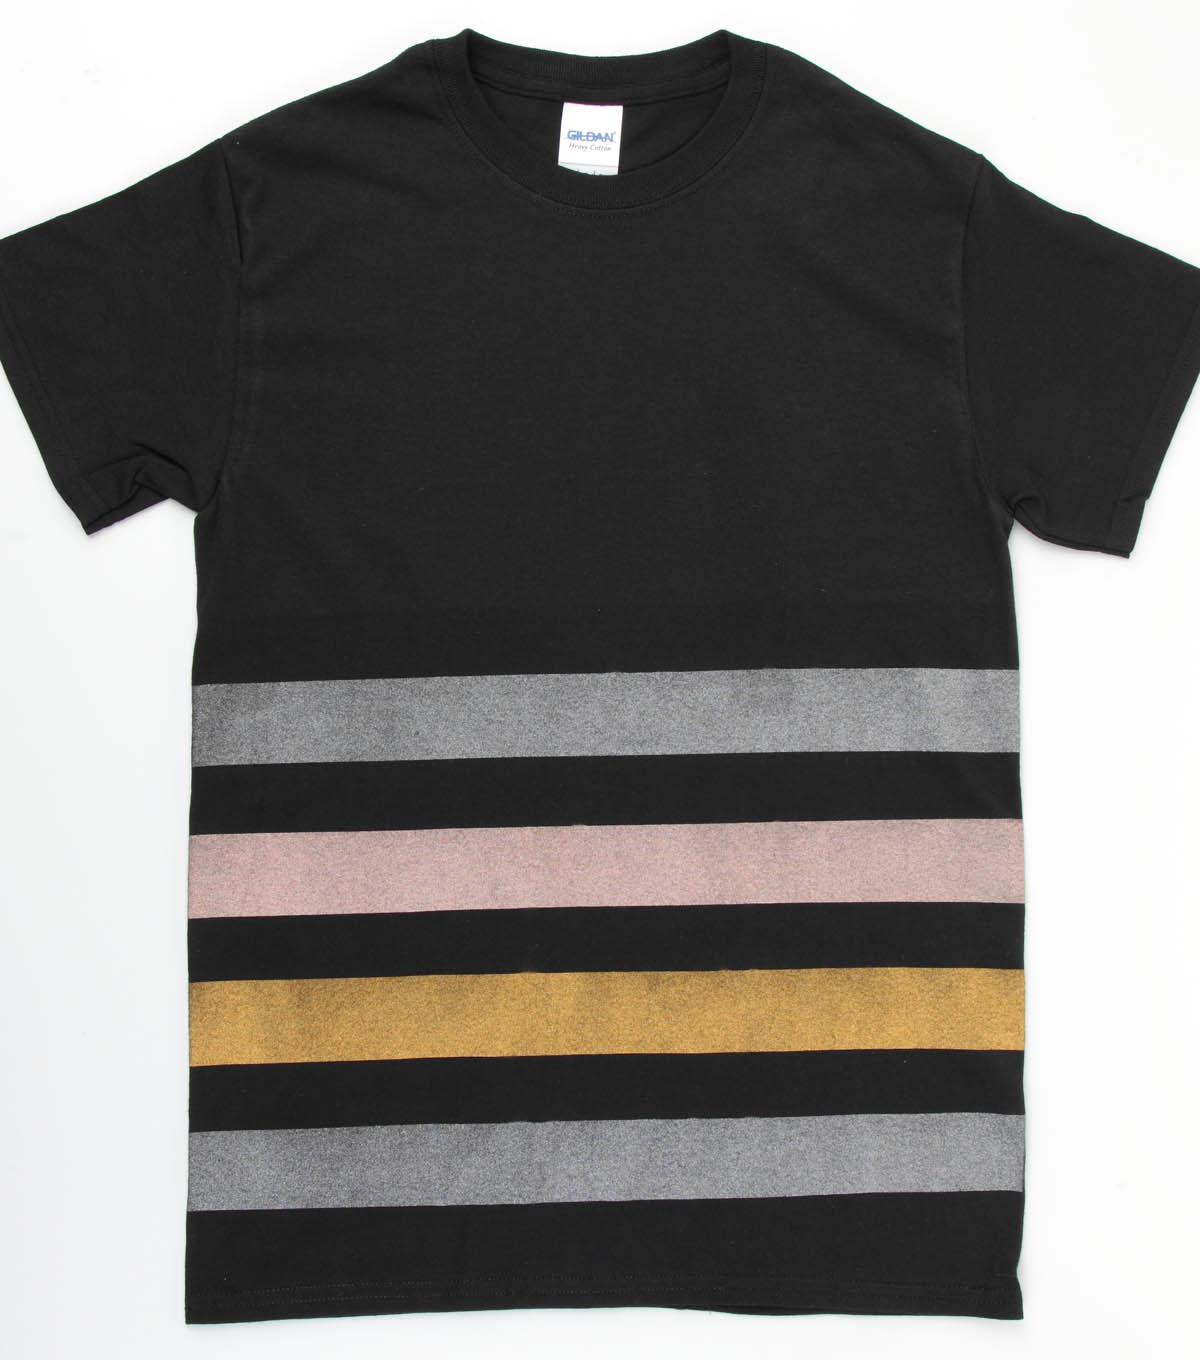 Stylin' in Stripes T-shirt